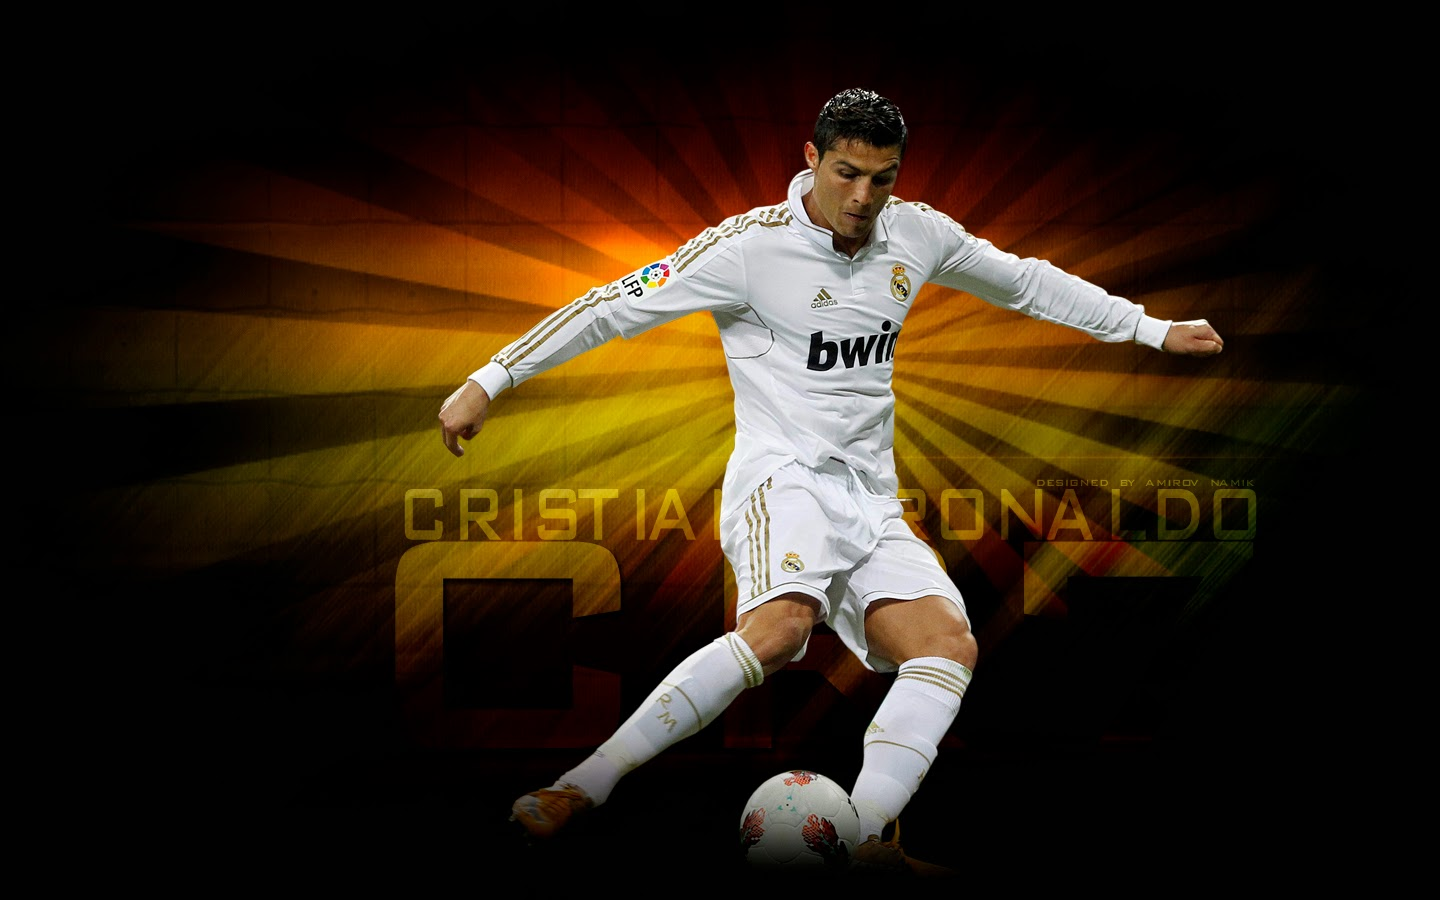 cristiano ronaldo cr7 wallpapers hd beautiful